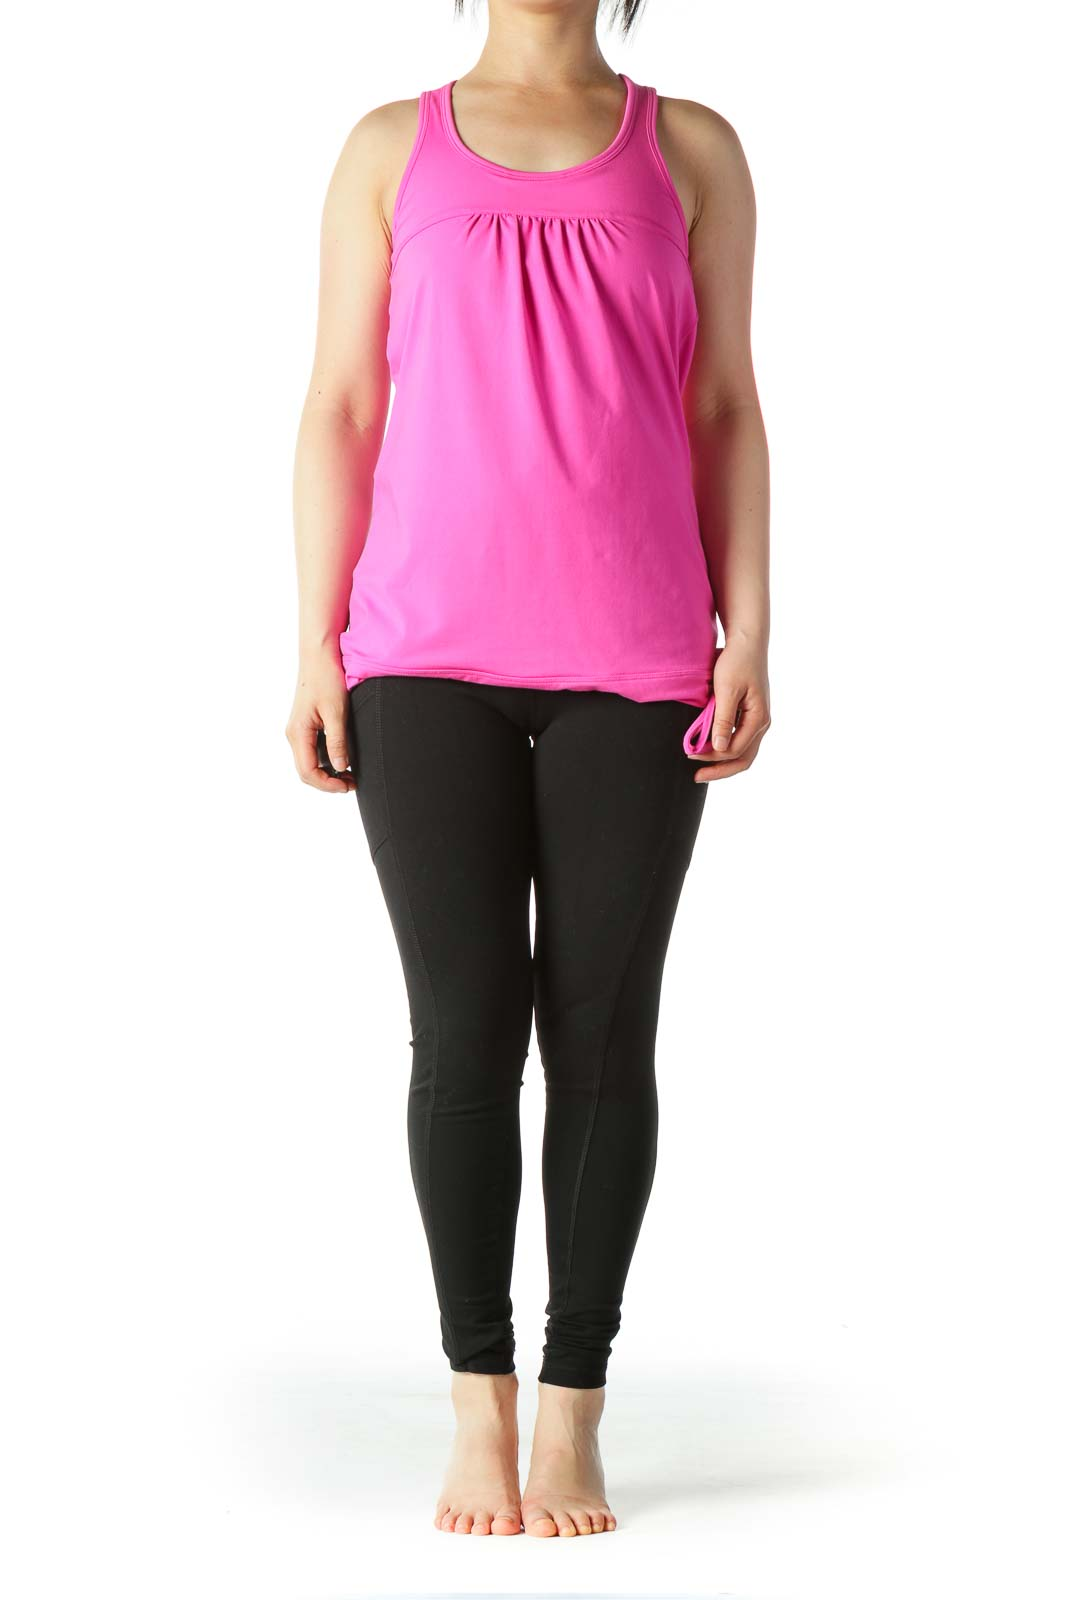 Magenta-Pink Sports Top with Built-In Bra